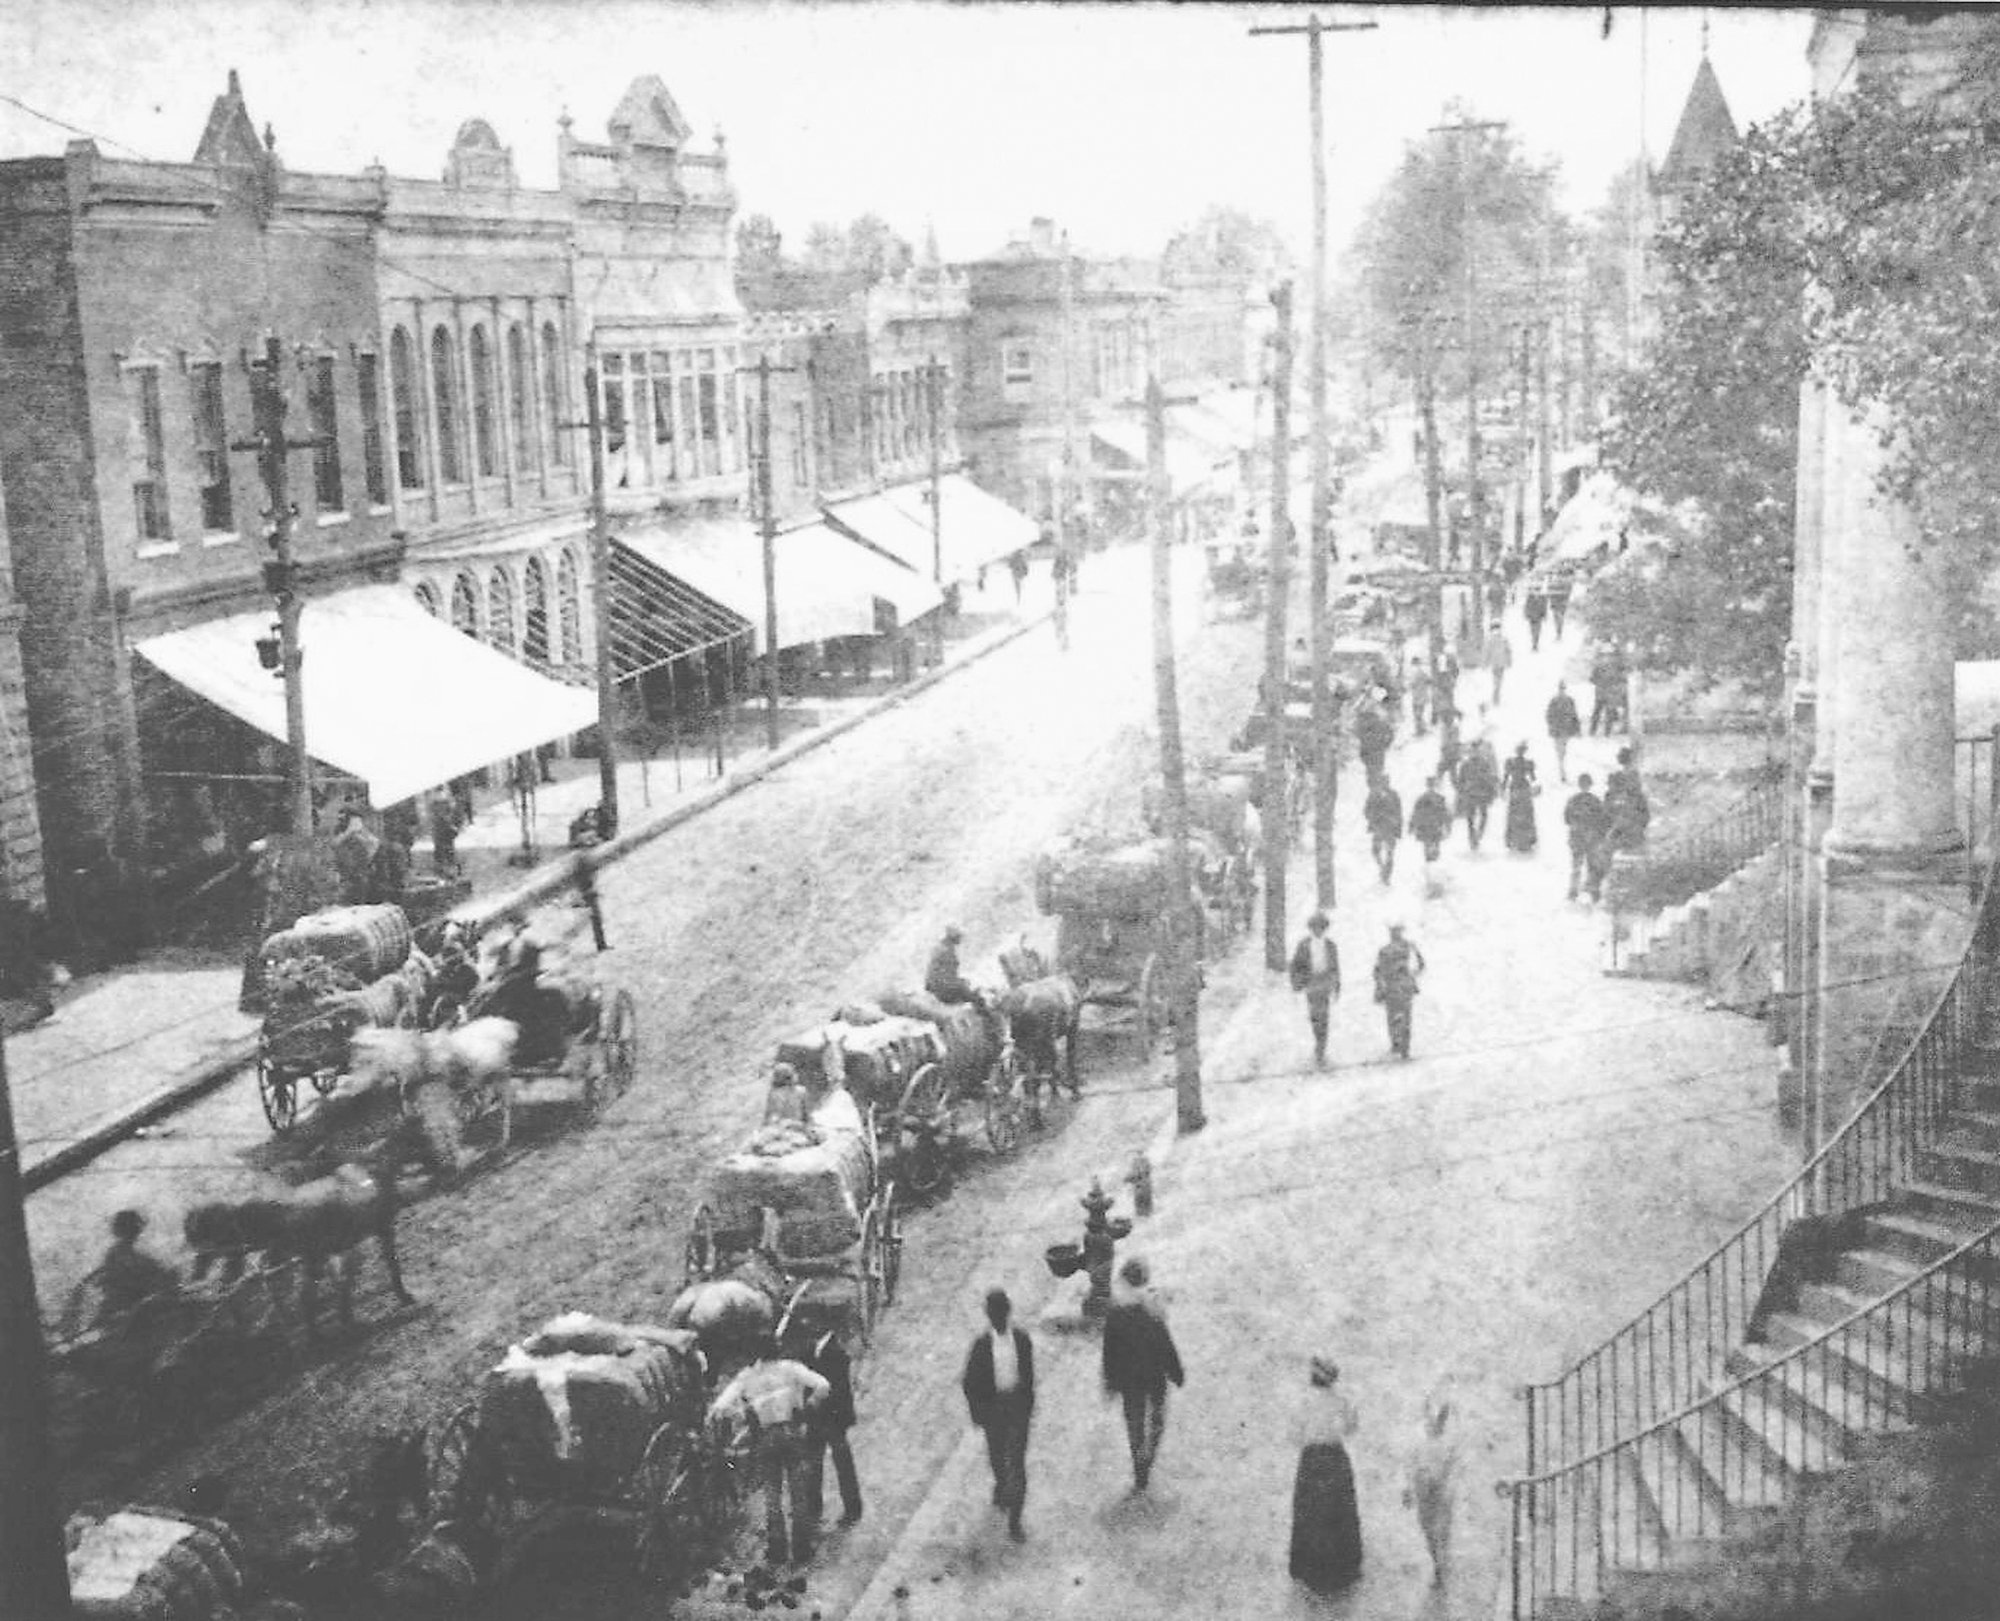 Main Street in Sumter is seen looking north about 1910-1912, with bales of cotton moving in wagons along the street.